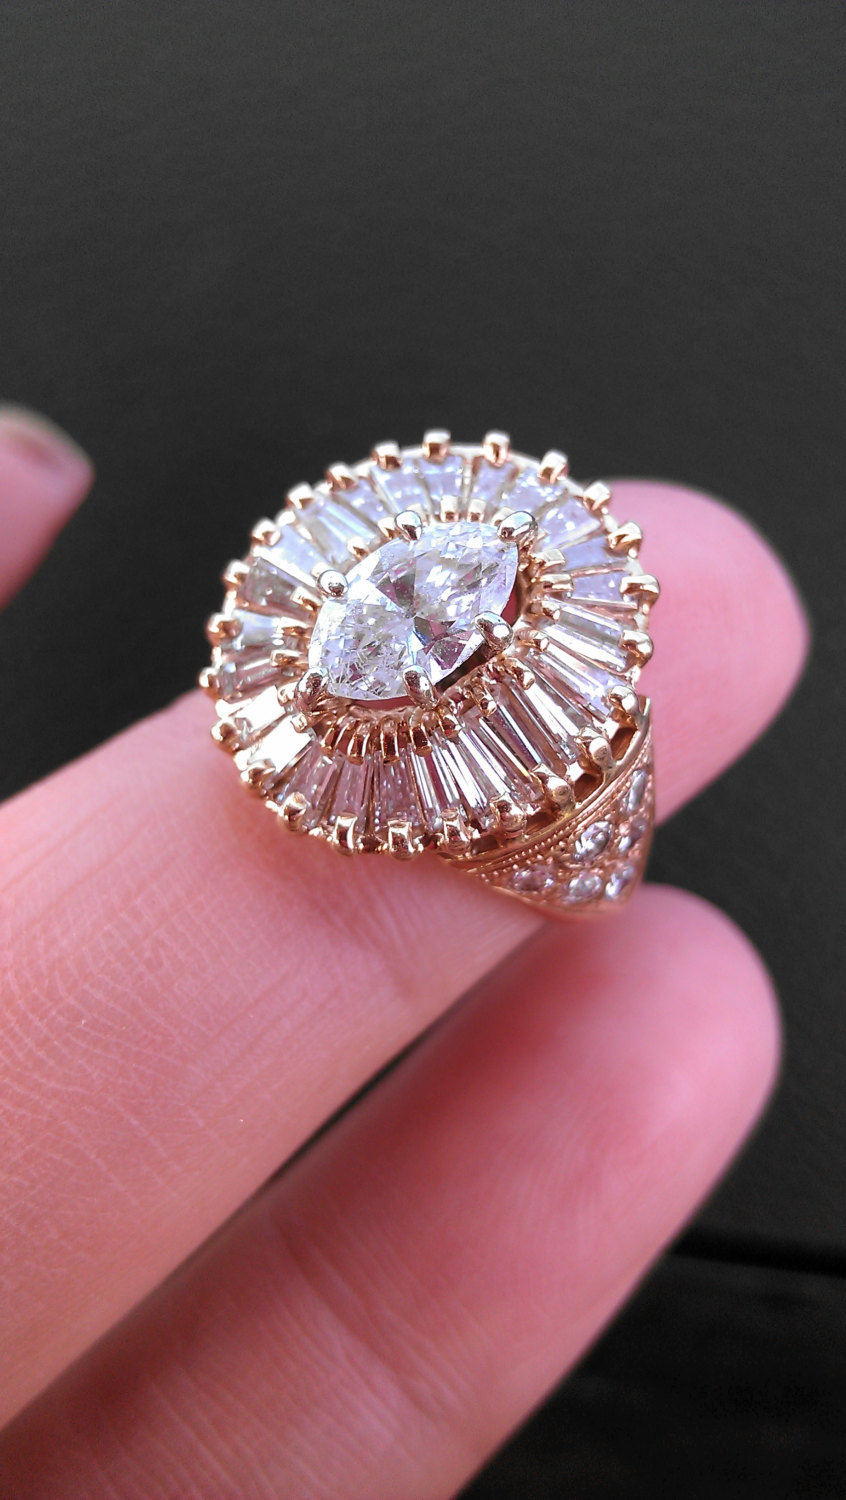 14k Gold 2ct Marquise Baguette Diamond and 50 similar items